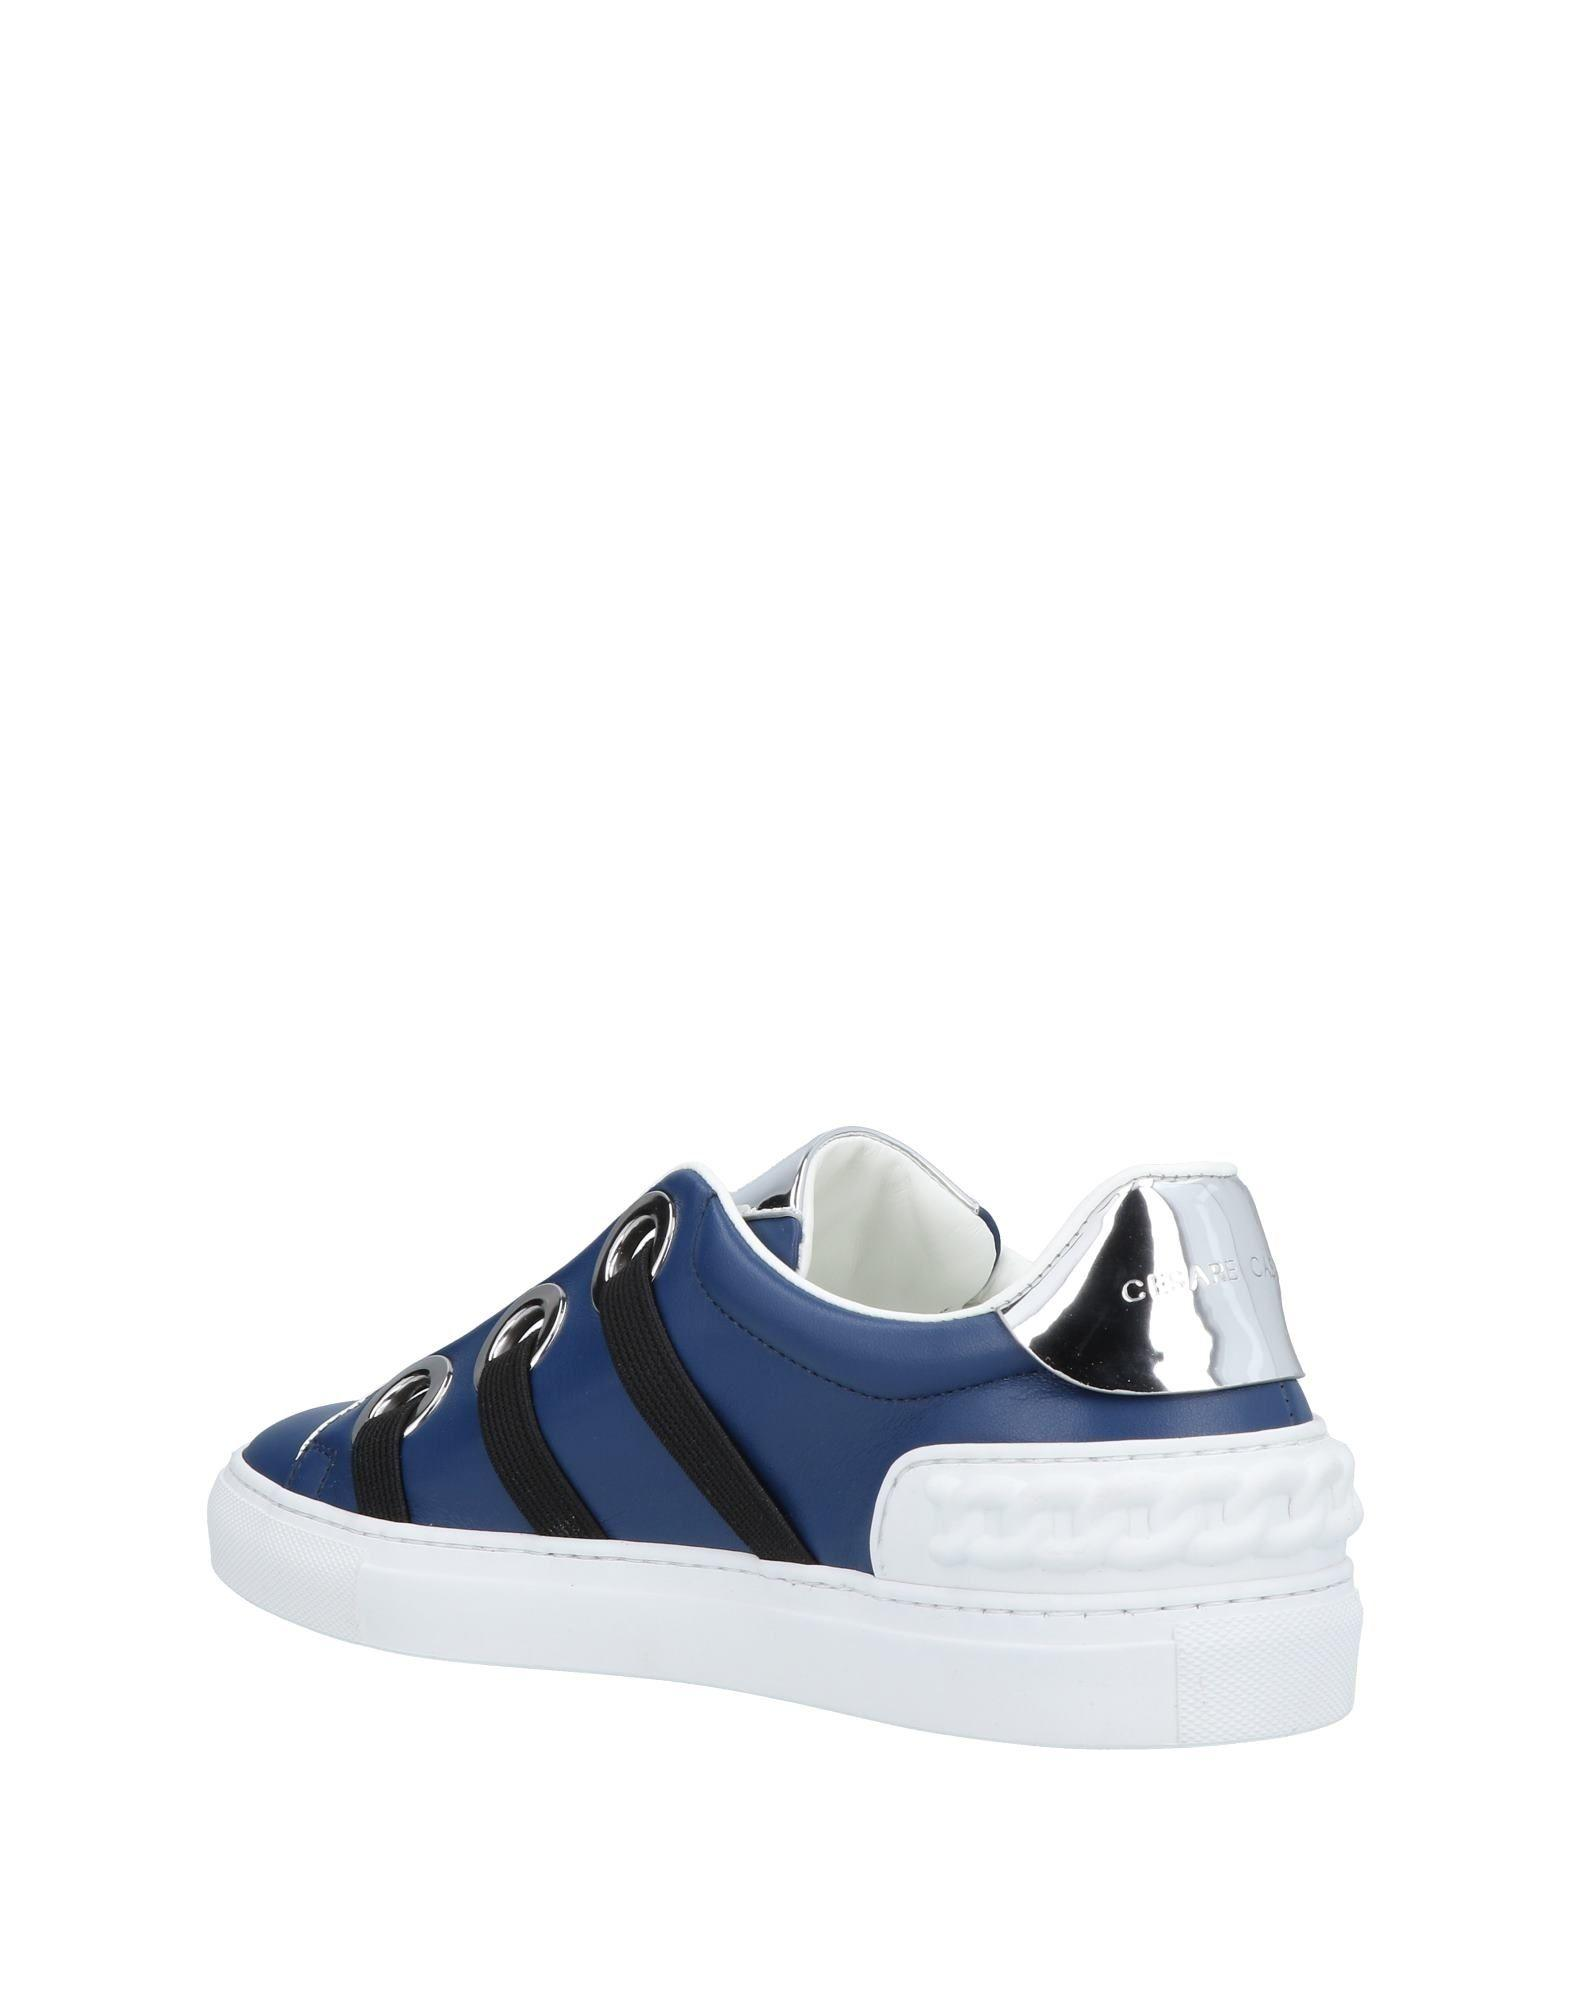 063c69360e7 Lyst - Casadei Low-tops & Sneakers in Blue for Men